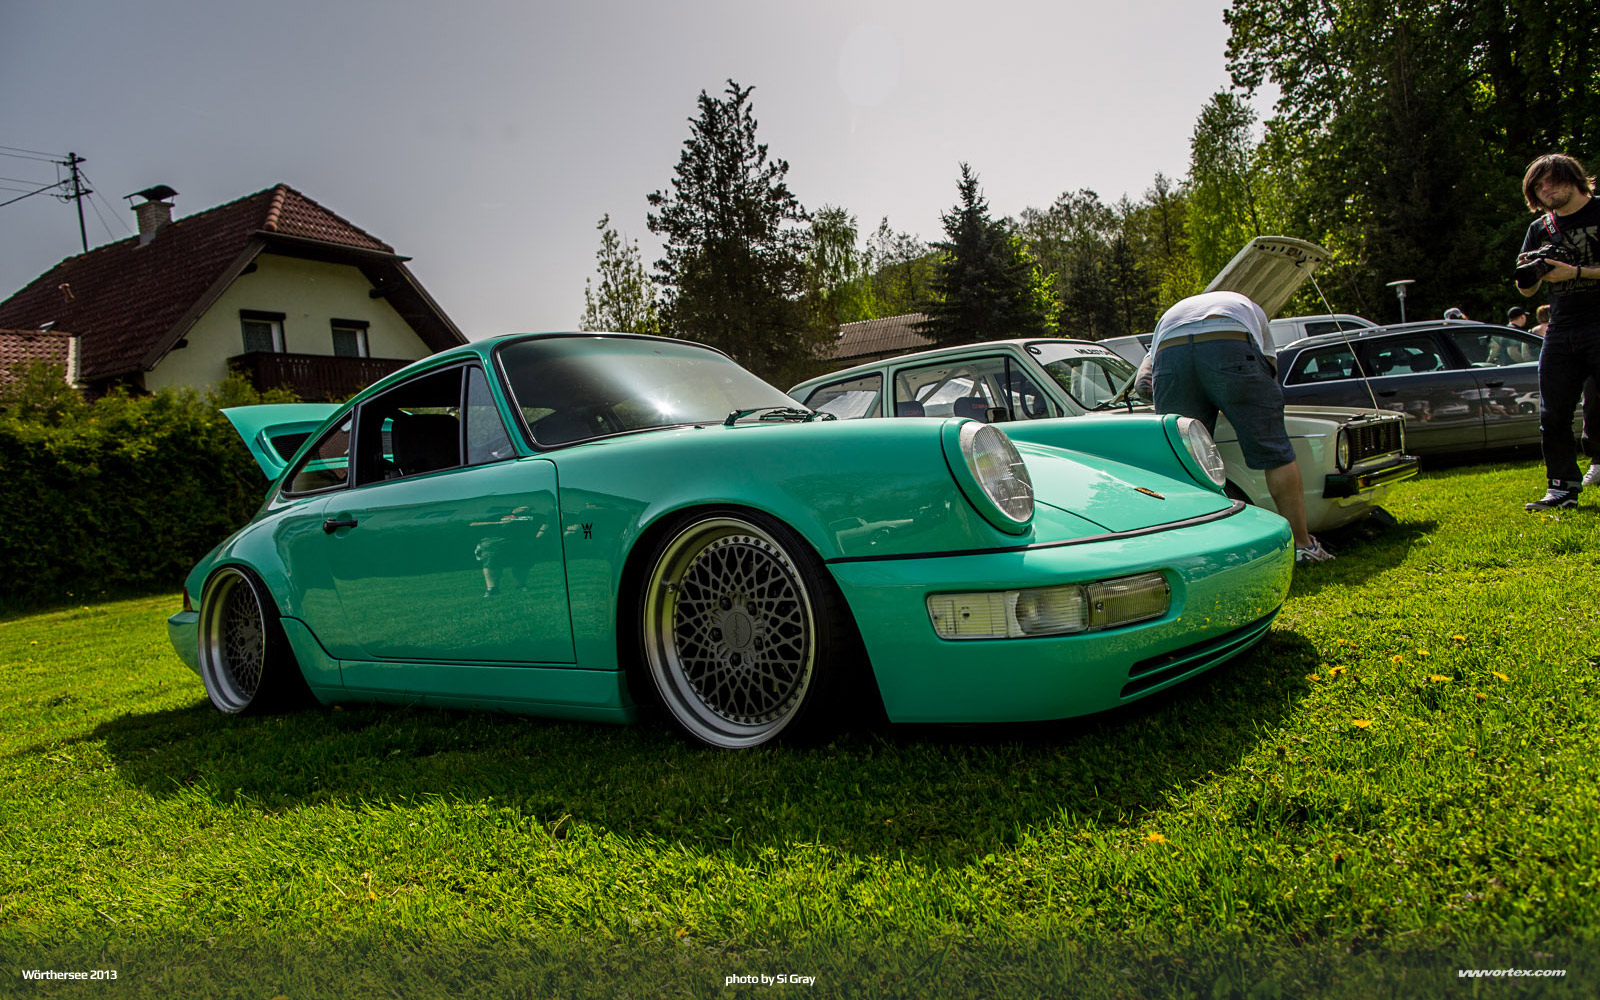 worthersee-2013-gallery-si-gray-134